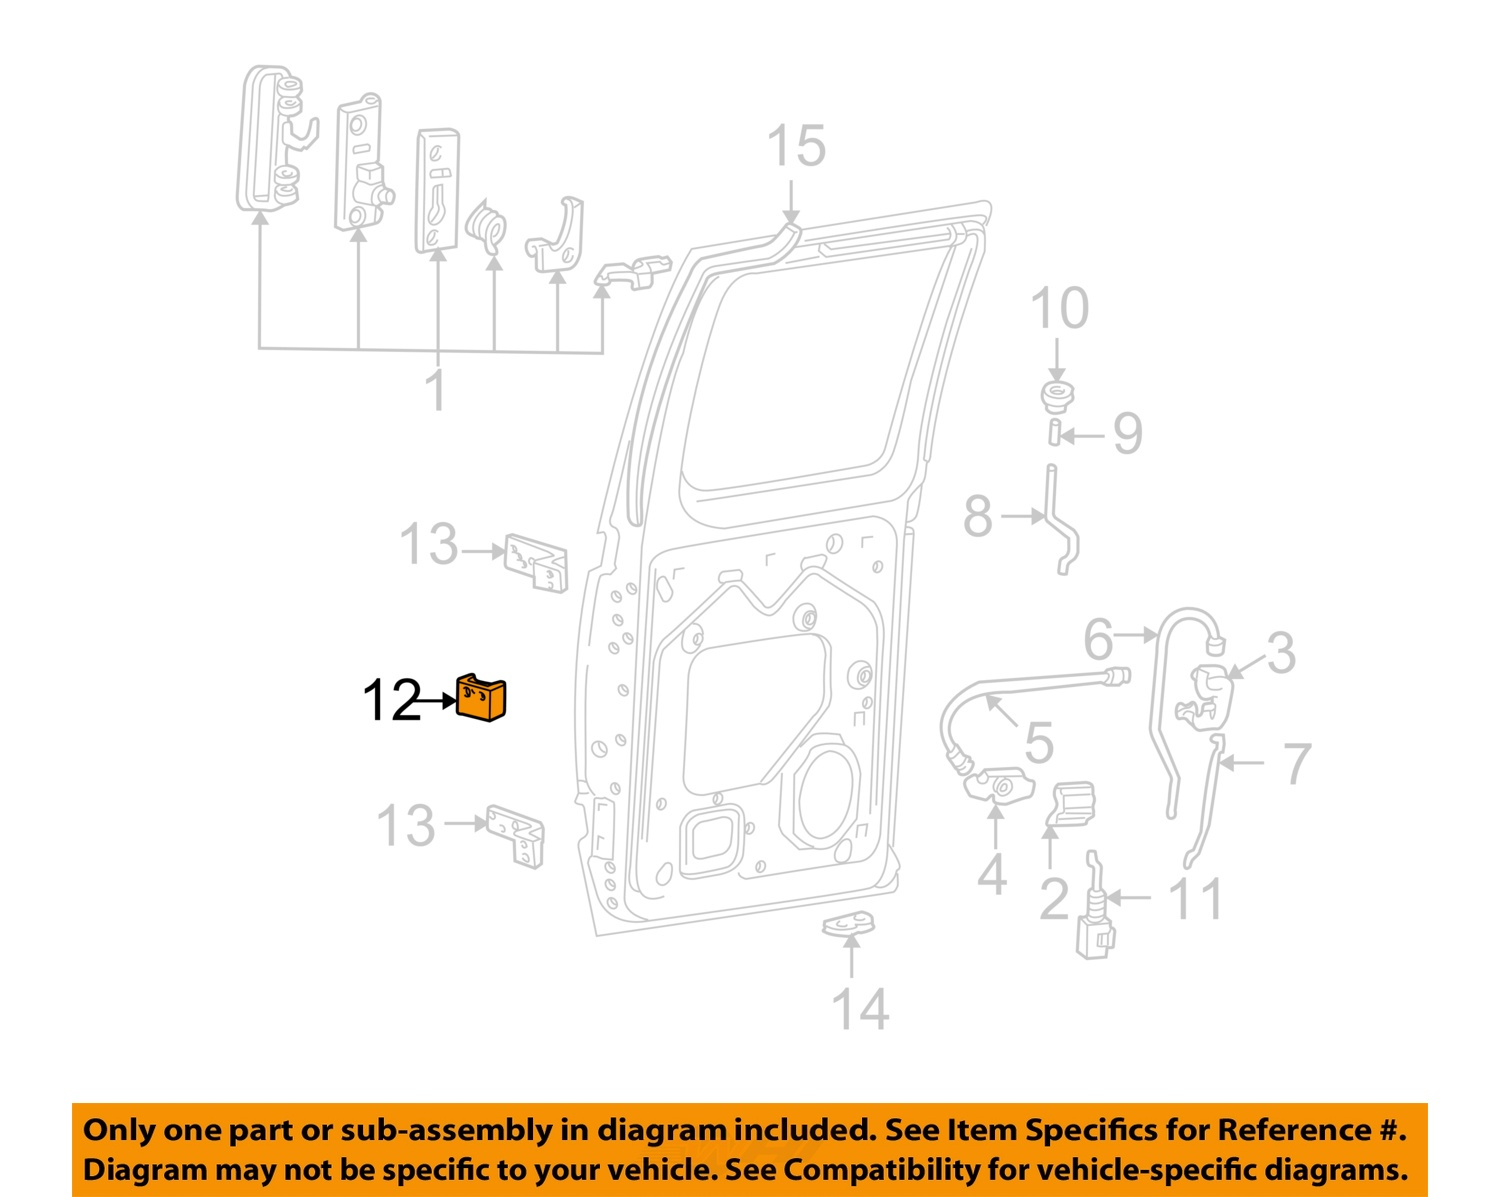 2005 Ford Freestar Manual Fuse Diagram Sliding Door Parts Trusted Wiring U Govjobs Co 1500x1197